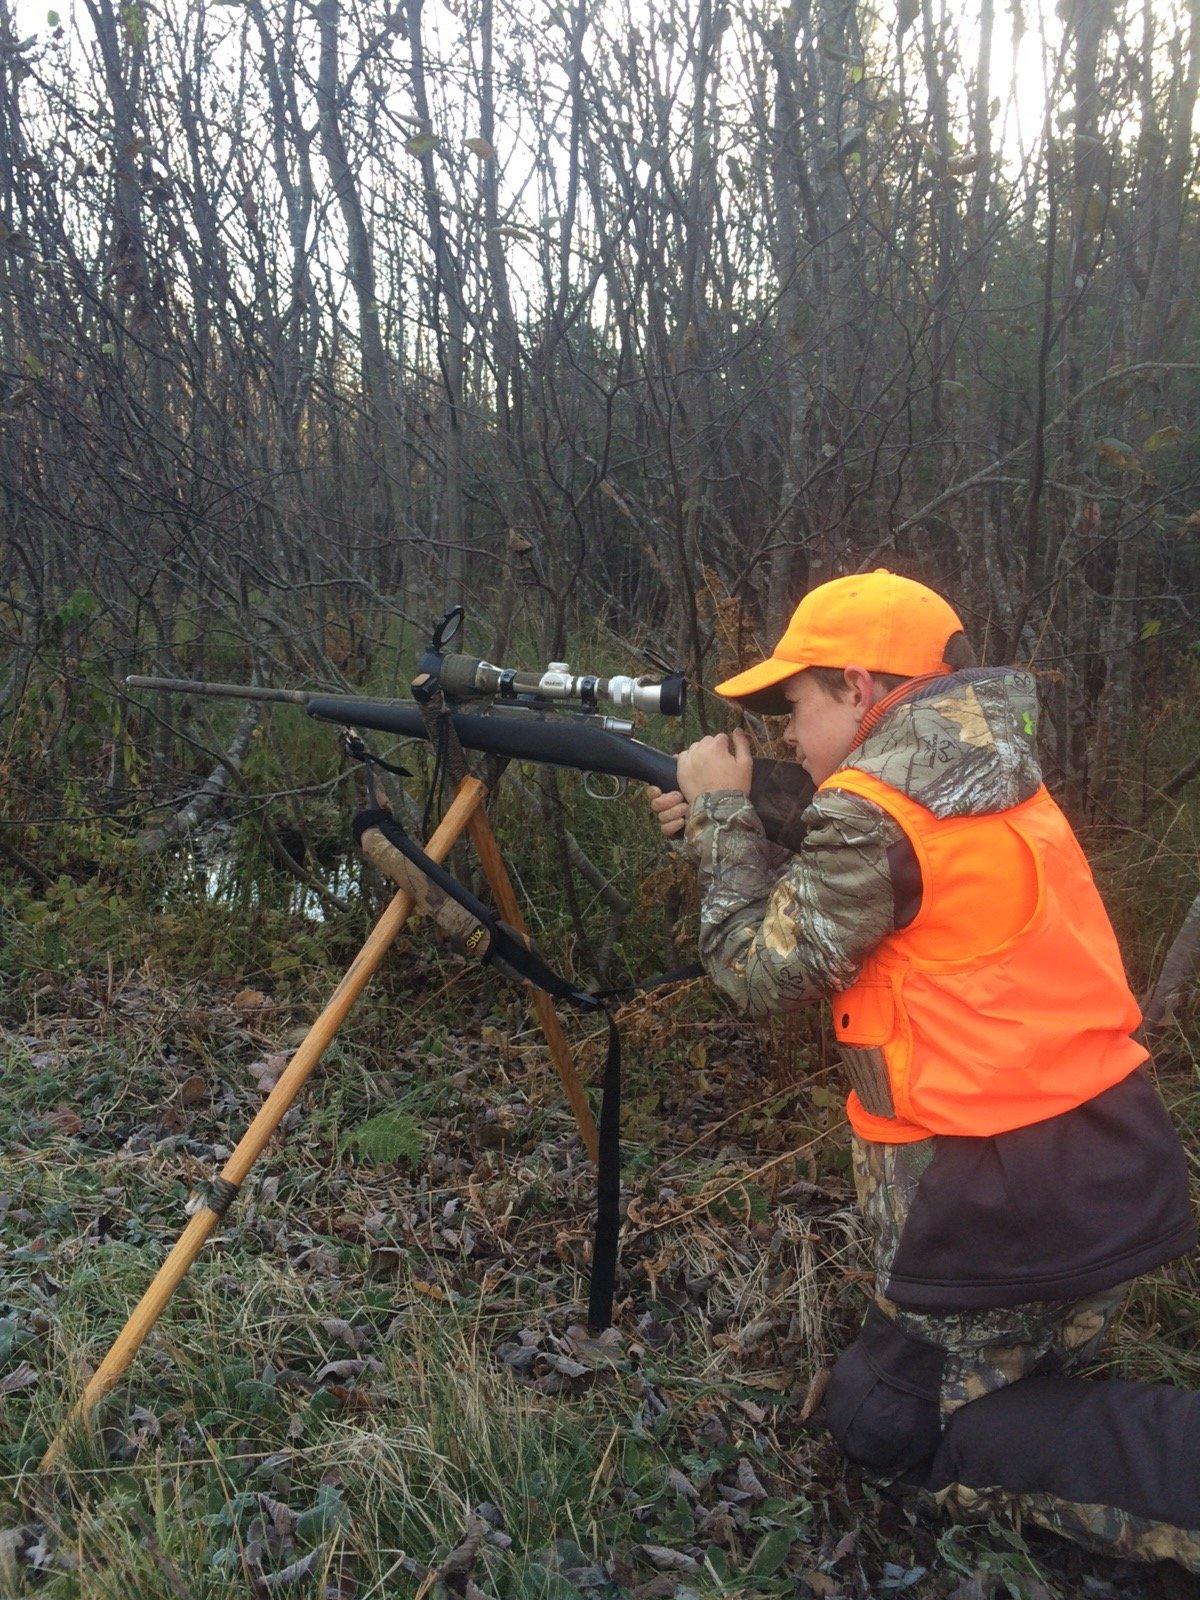 Taking careful aim!